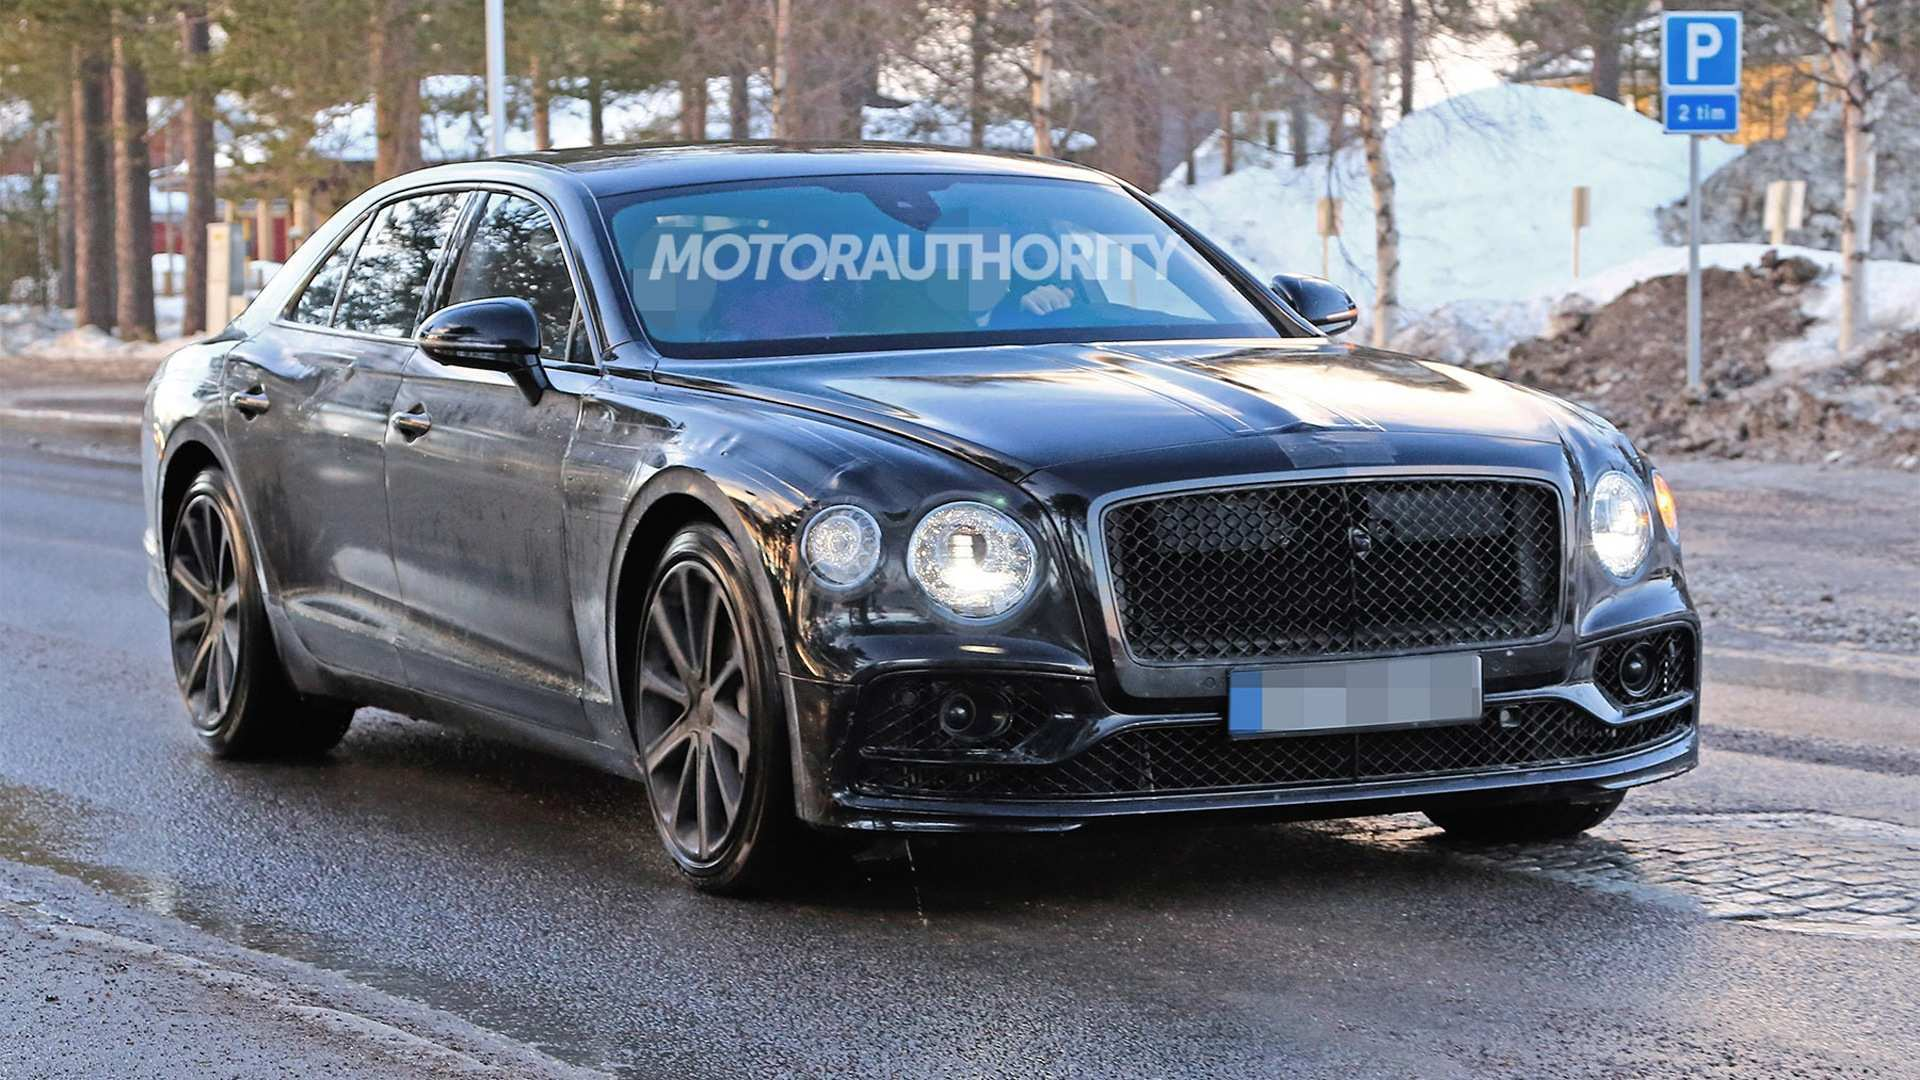 42 New 2020 Bentley Flying Spur Release Date And Concept